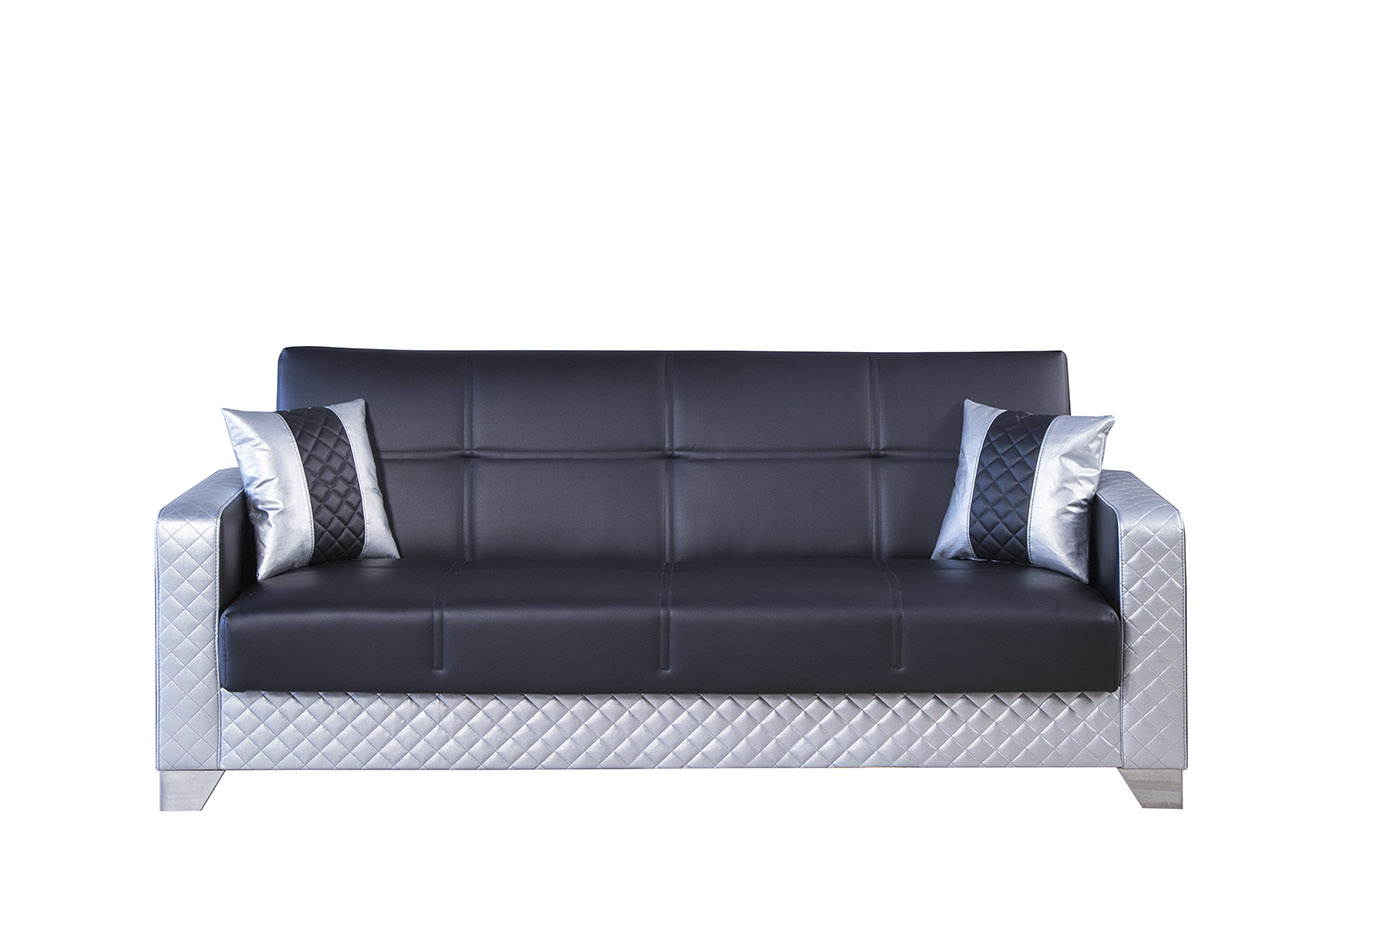 Maximum Value Black Silver Convertible Sofa By Casamode